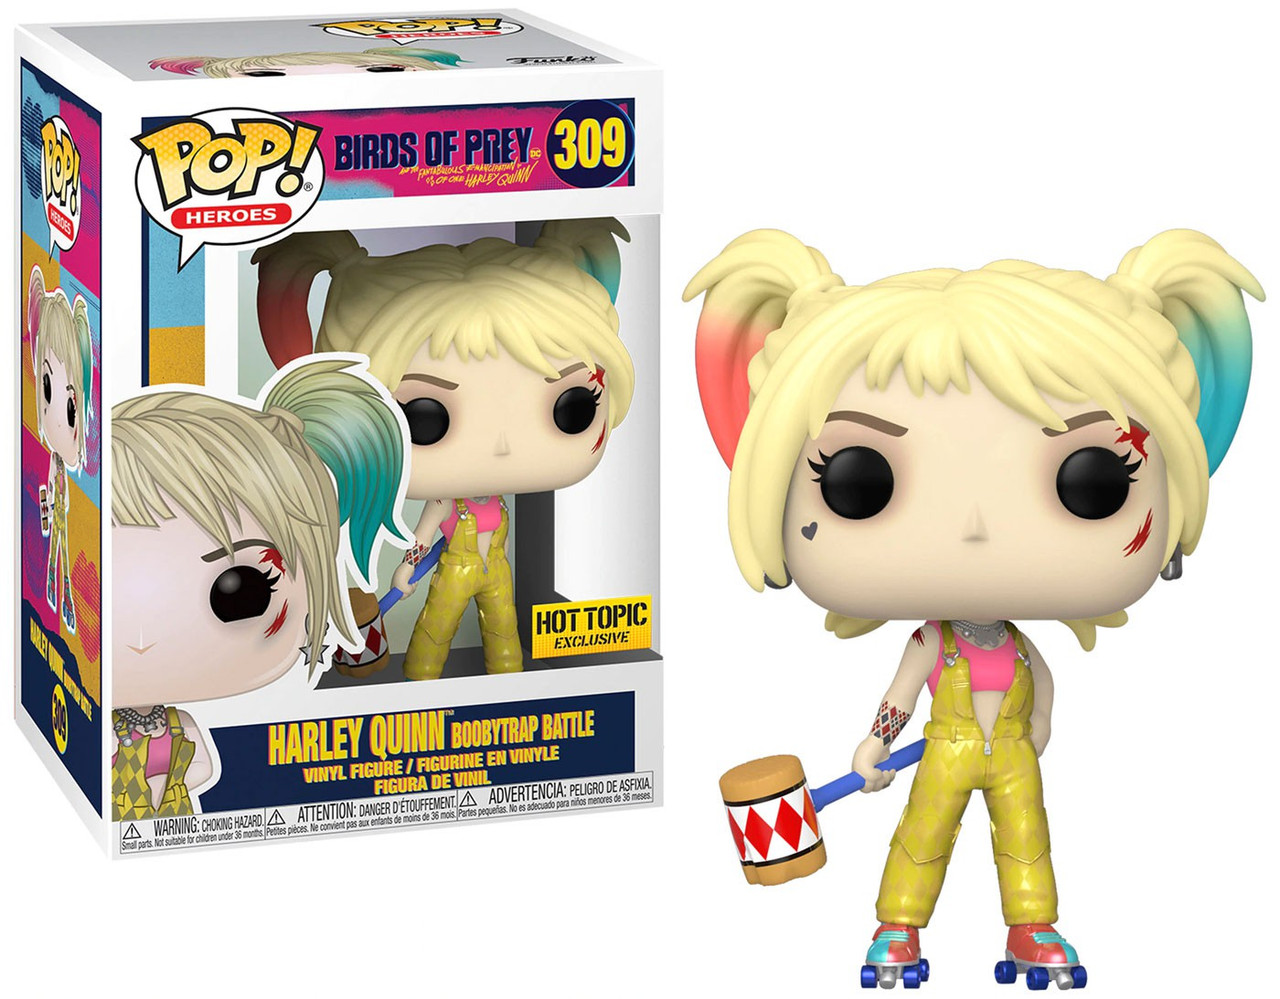 Funko Dc Birds Of Prey Pop Heroes Harley Quinn Boobytrap Battle Exclusive Vinyl Figure 309 Toywiz